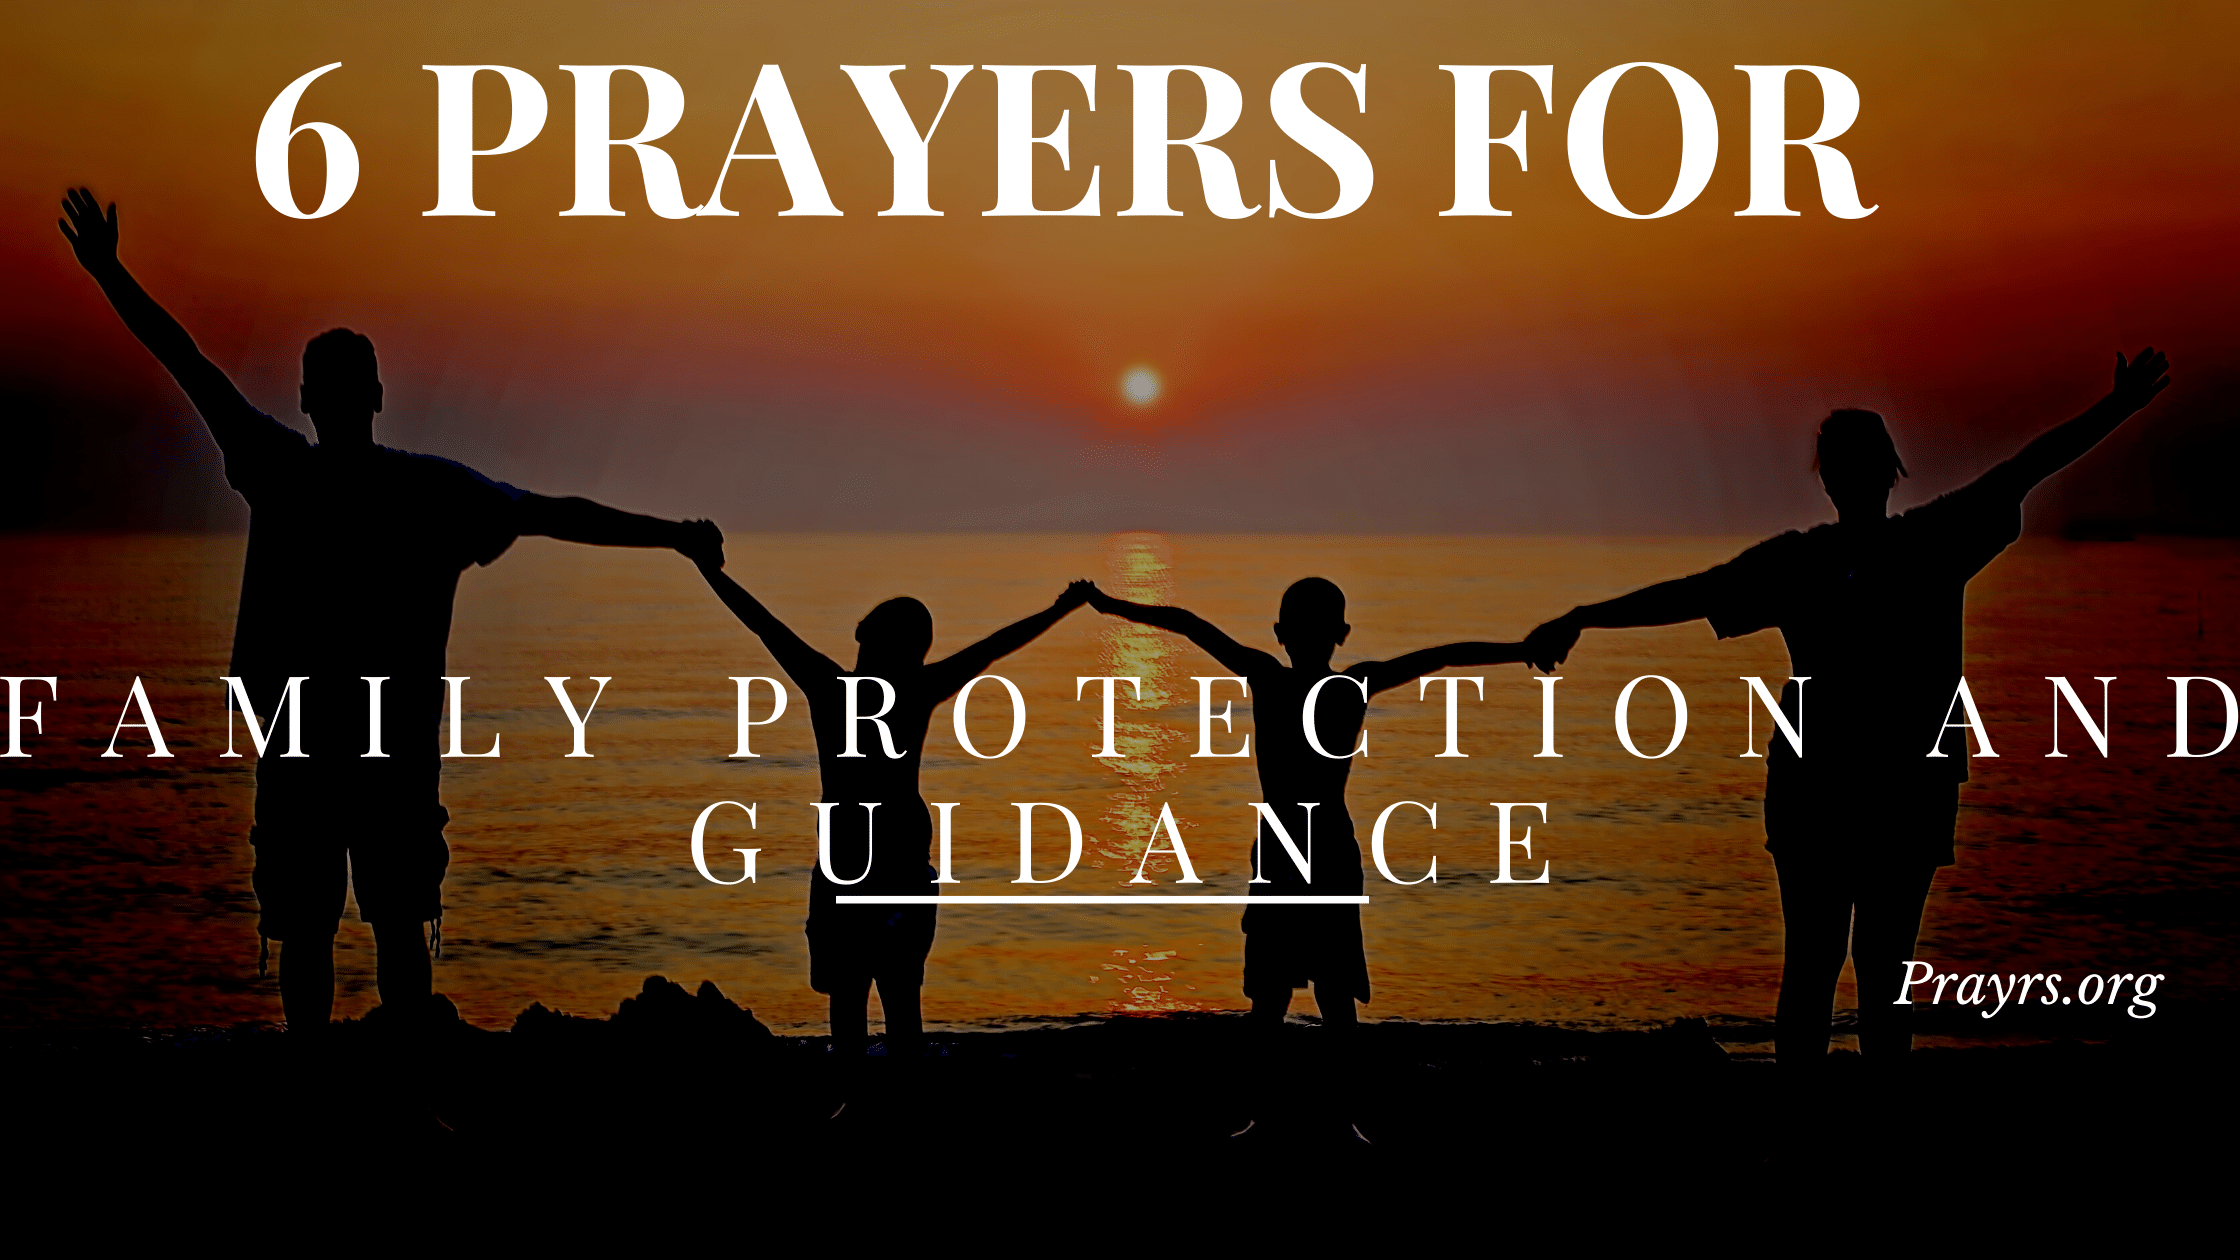 Prayers for Family Protection and Guidance